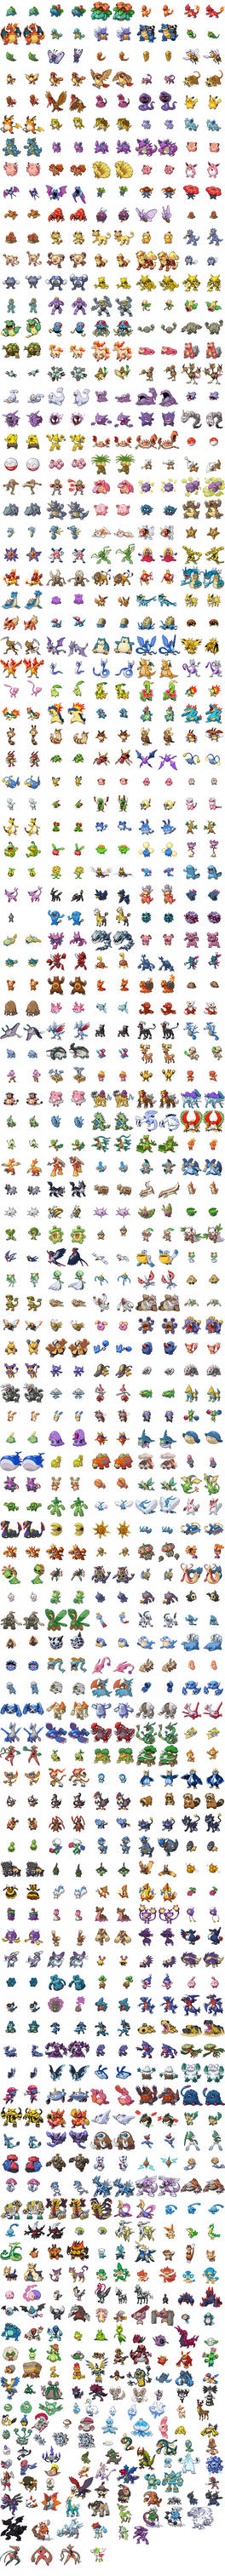 -Sprite Sheet- All 649 Pokemon by rocky7897